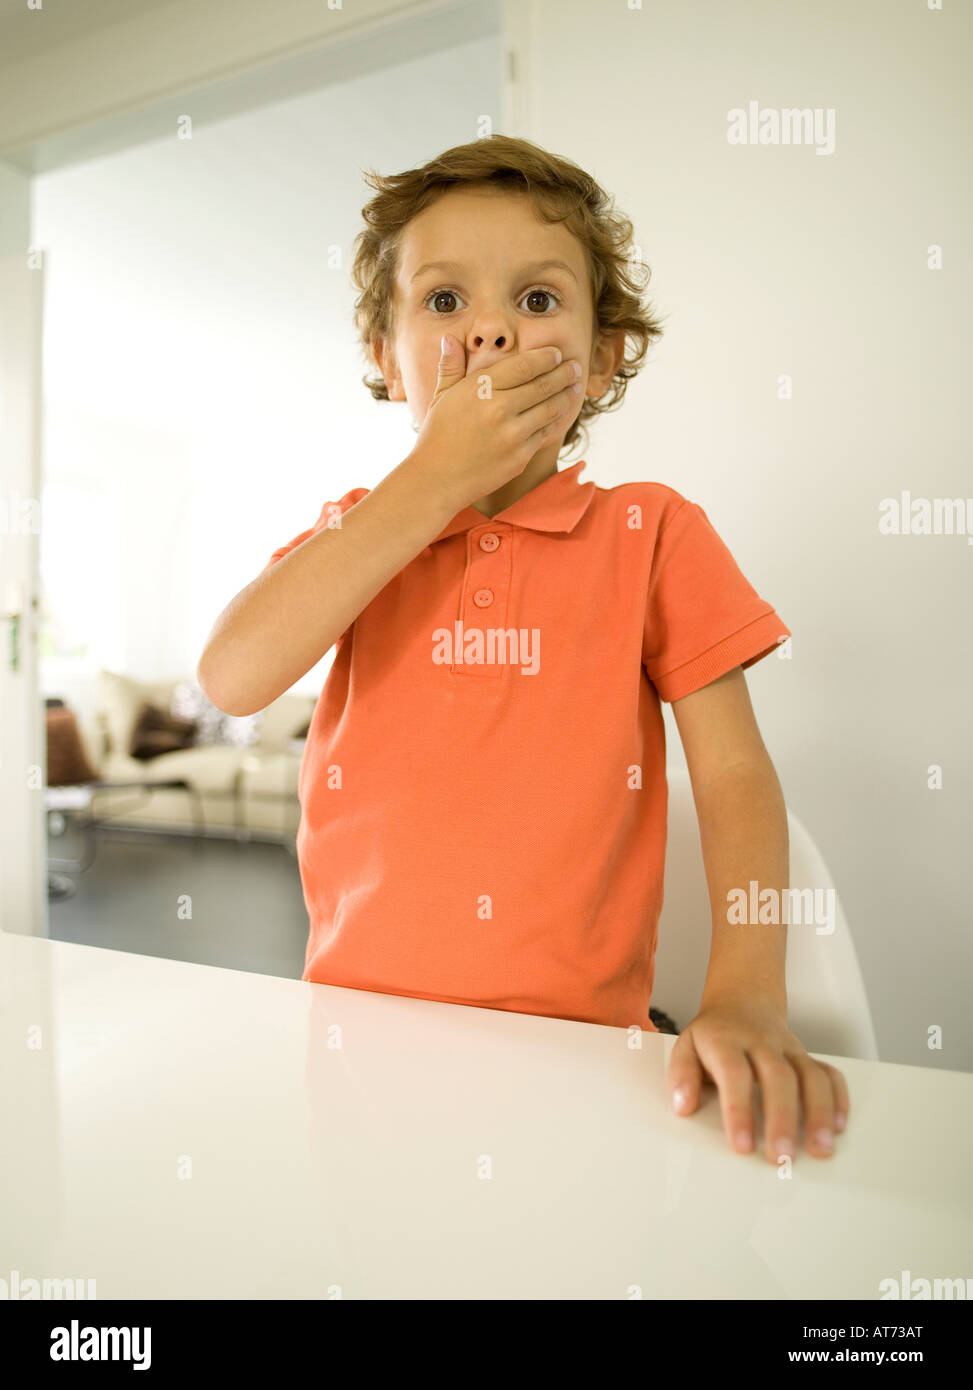 Young boy (4-5) covering his mouth with his hands, portrait - Stock Image